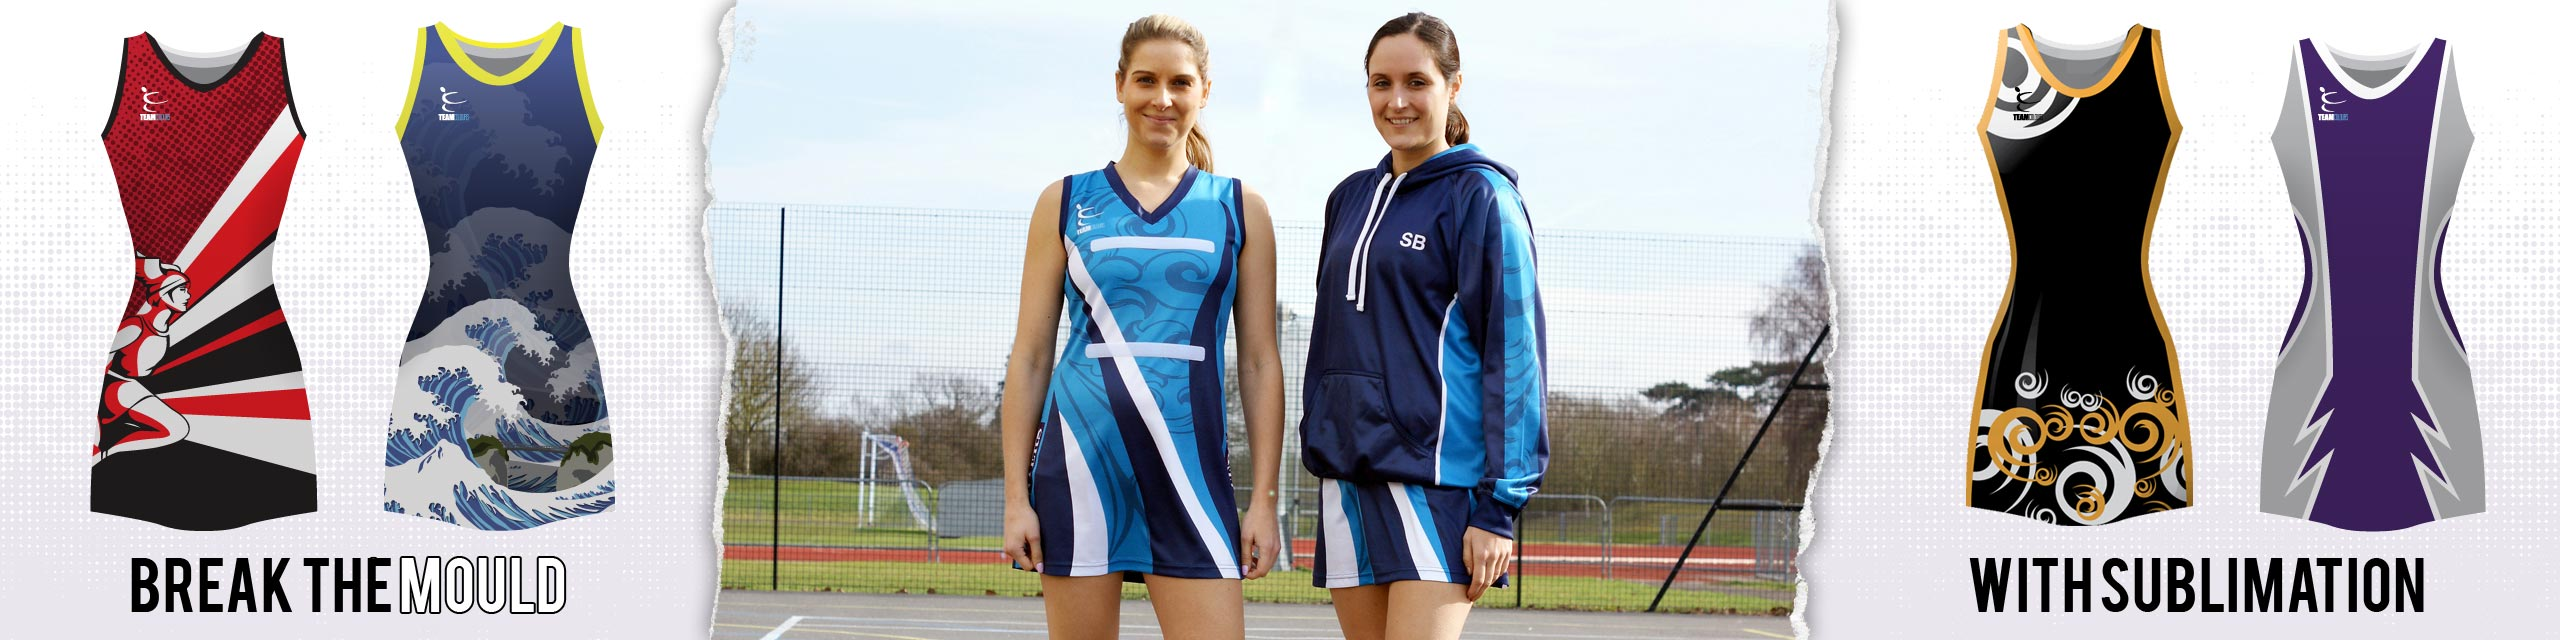 Design you own sublimated netball kits at Team Colours